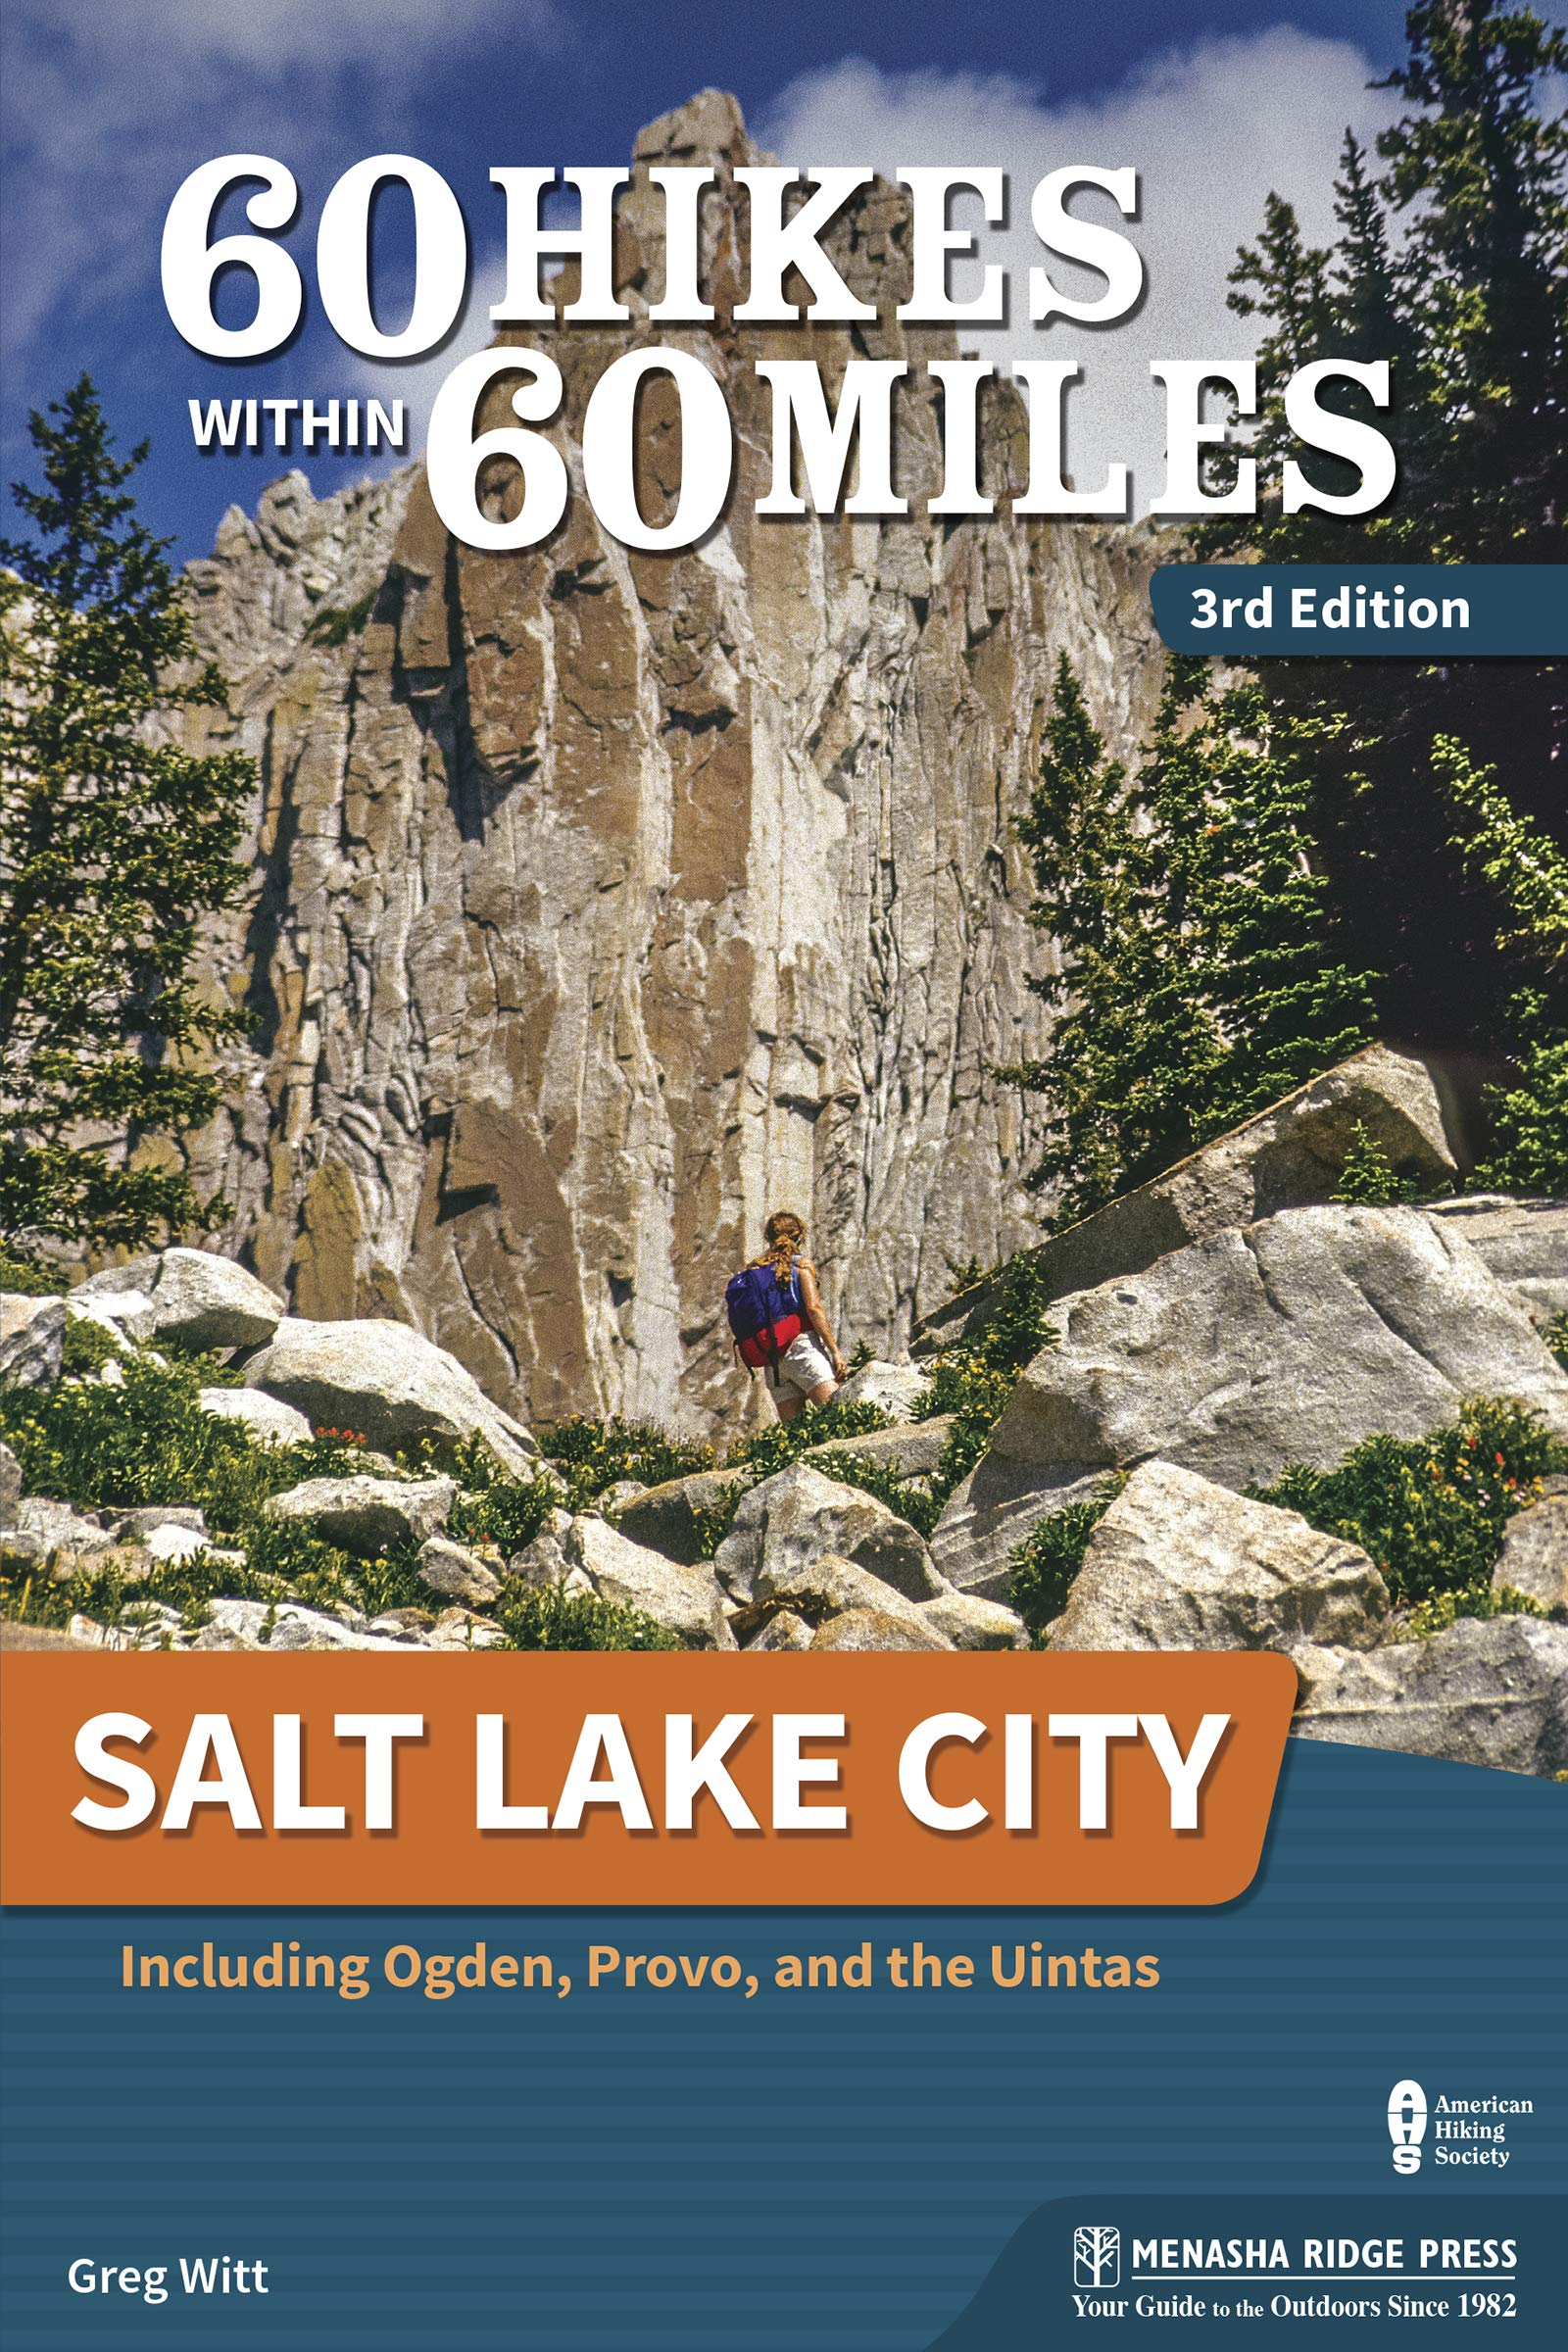 Image Of60 Hikes Within 60 Miles: Salt Lake City: Including Ogden, Provo, And The Uintas